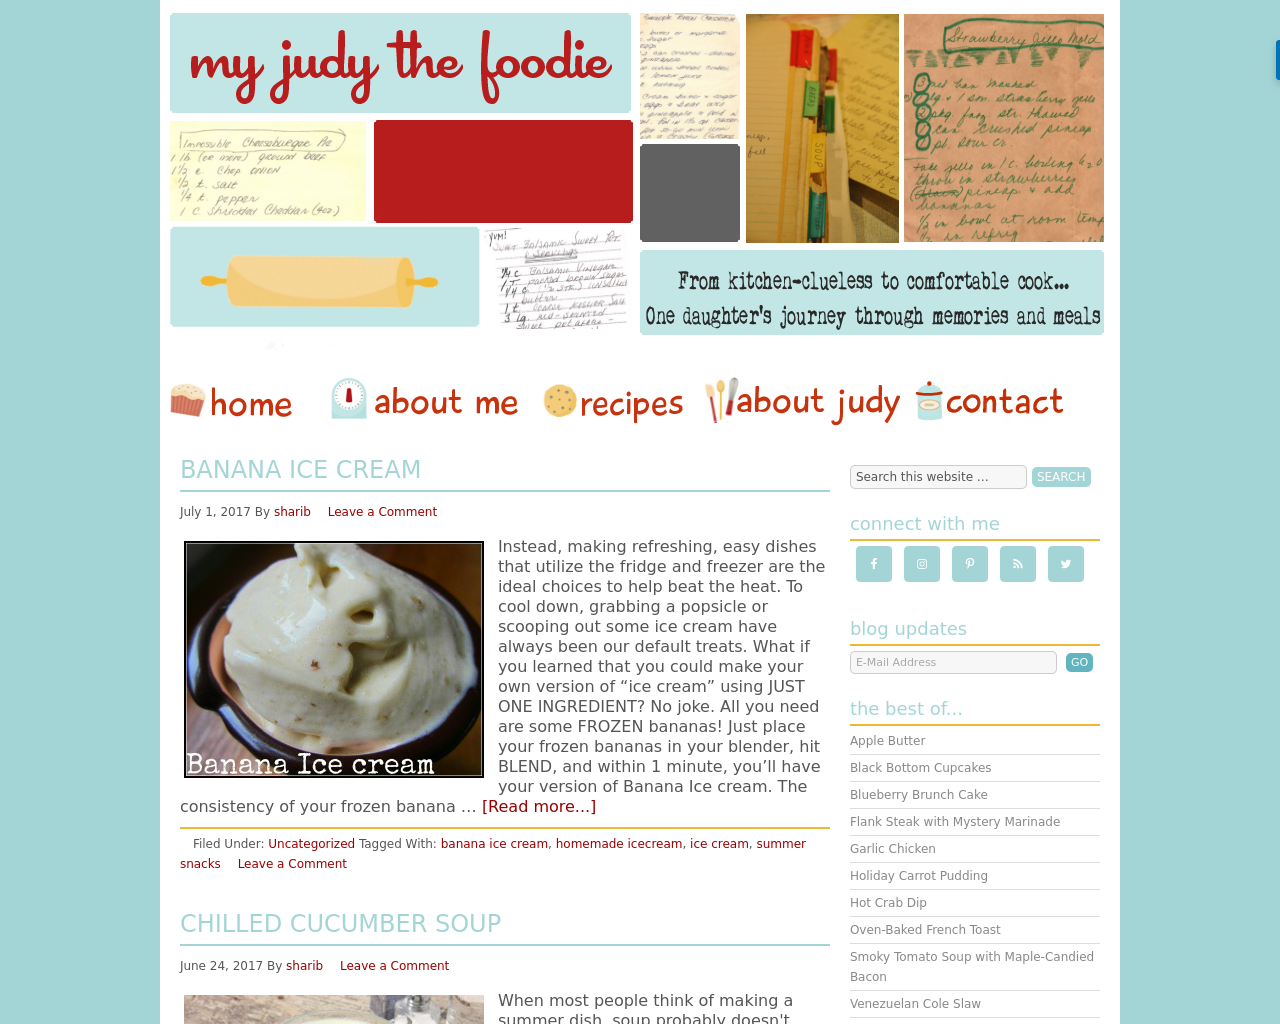 My-Judy-the-Foodie-Advertising-Reviews-Pricing